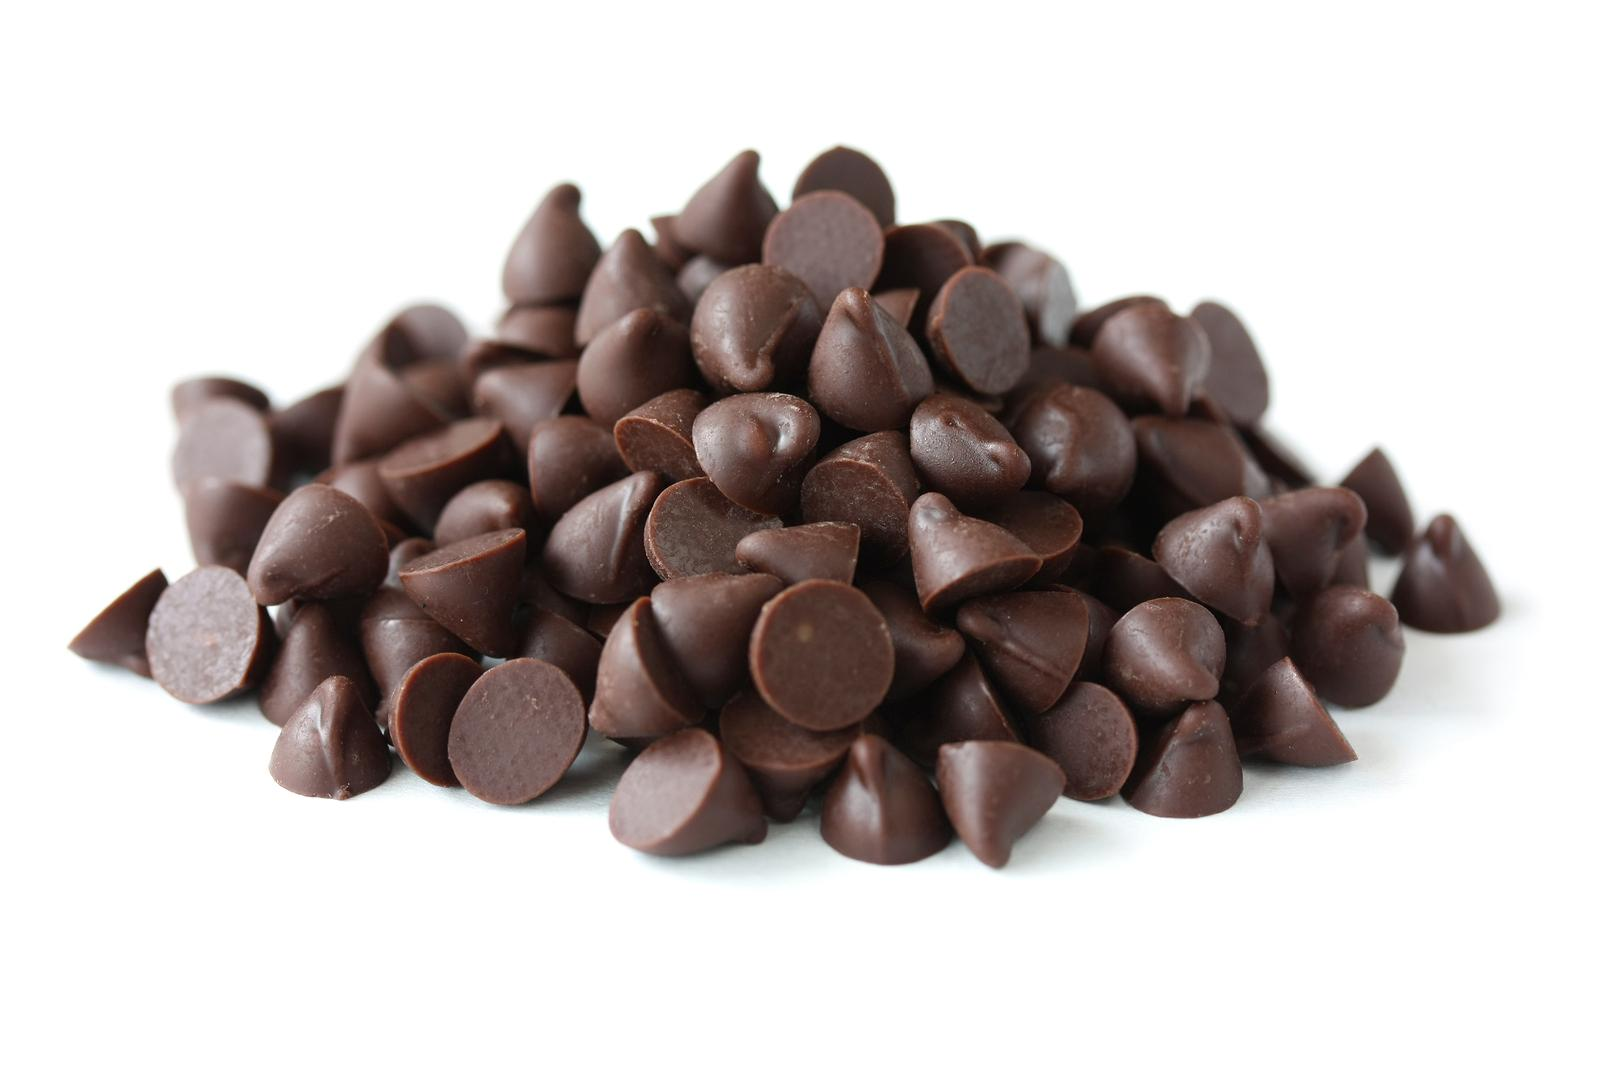 Chocolate Chips Png, png collections at sccpre.cat.